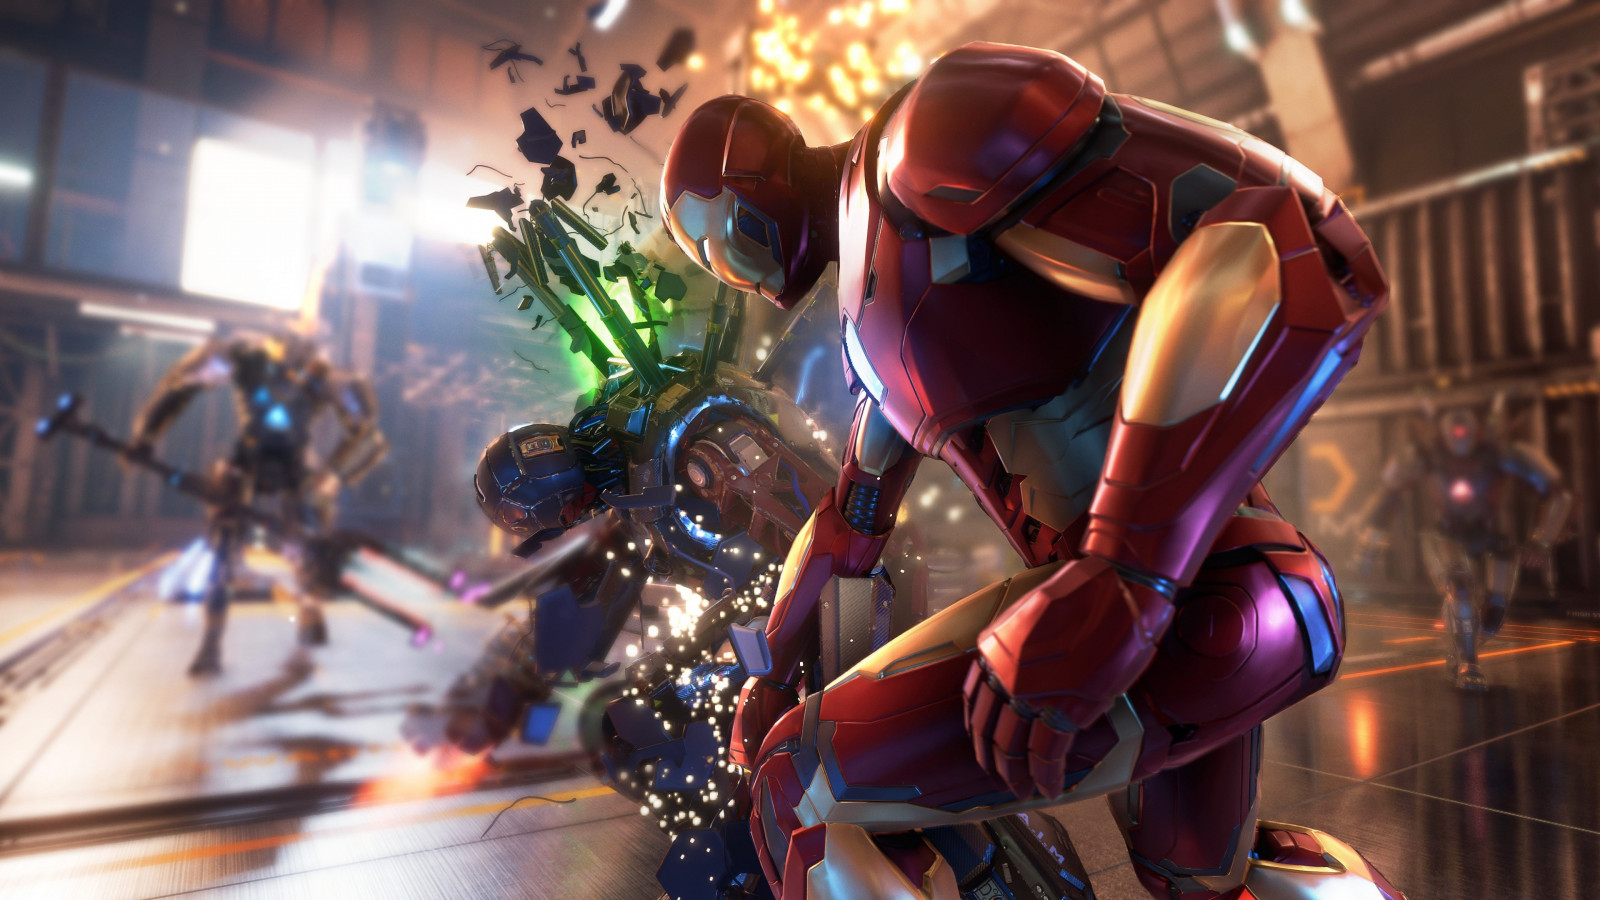 Iron Man in Marvel's Avengers video game wallpaper 1600x900